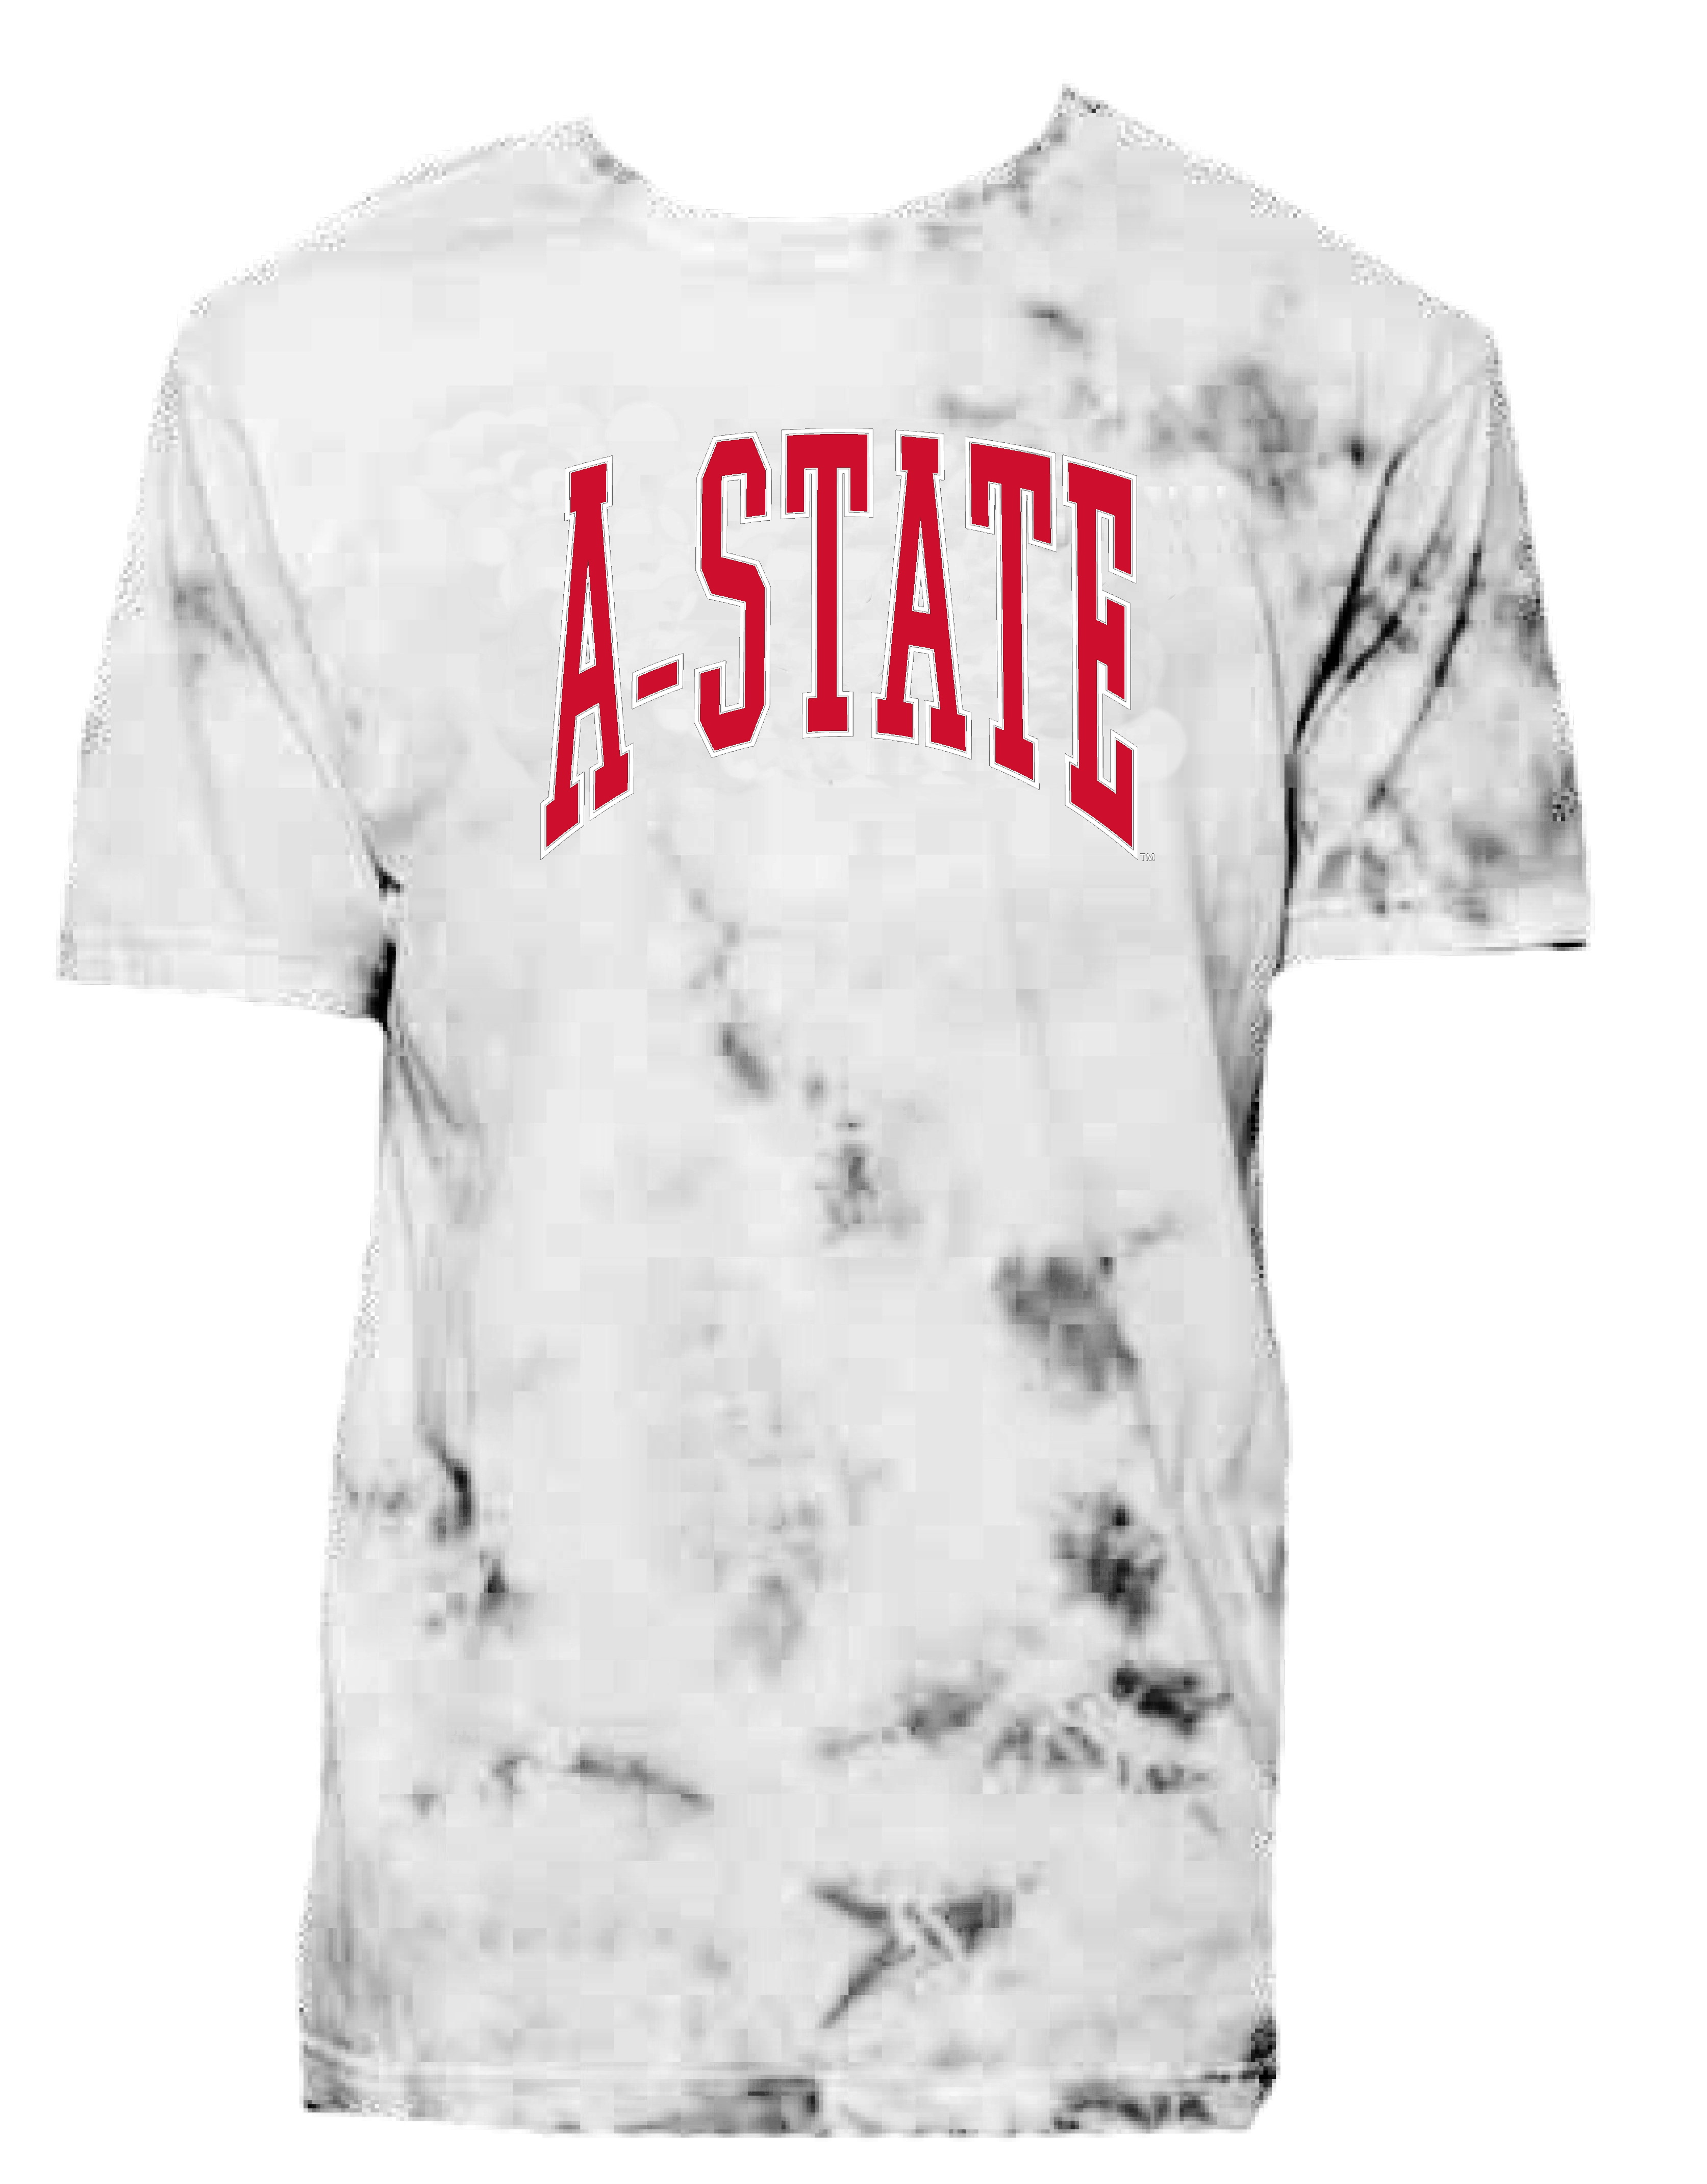 A-State Oversized Tie Dye Crew Neck Tee